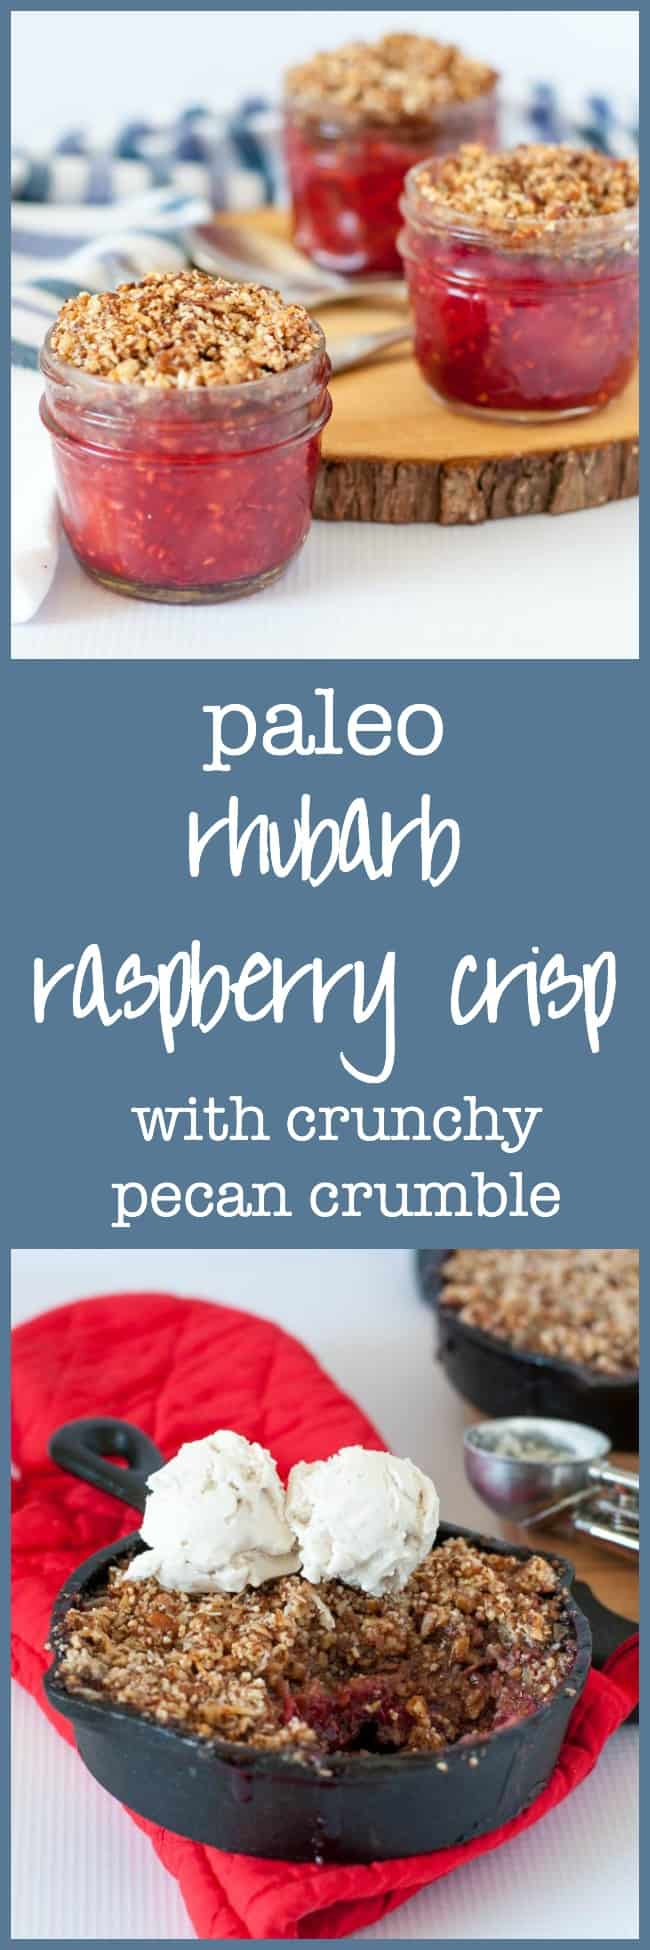 Paleo Rhubarb Raspberry Crisp with Crunchy Pecan Crumble. A grain-free, dairy-free spring time dessert with rhubarb and raspberries and a pecan-coconut topping.